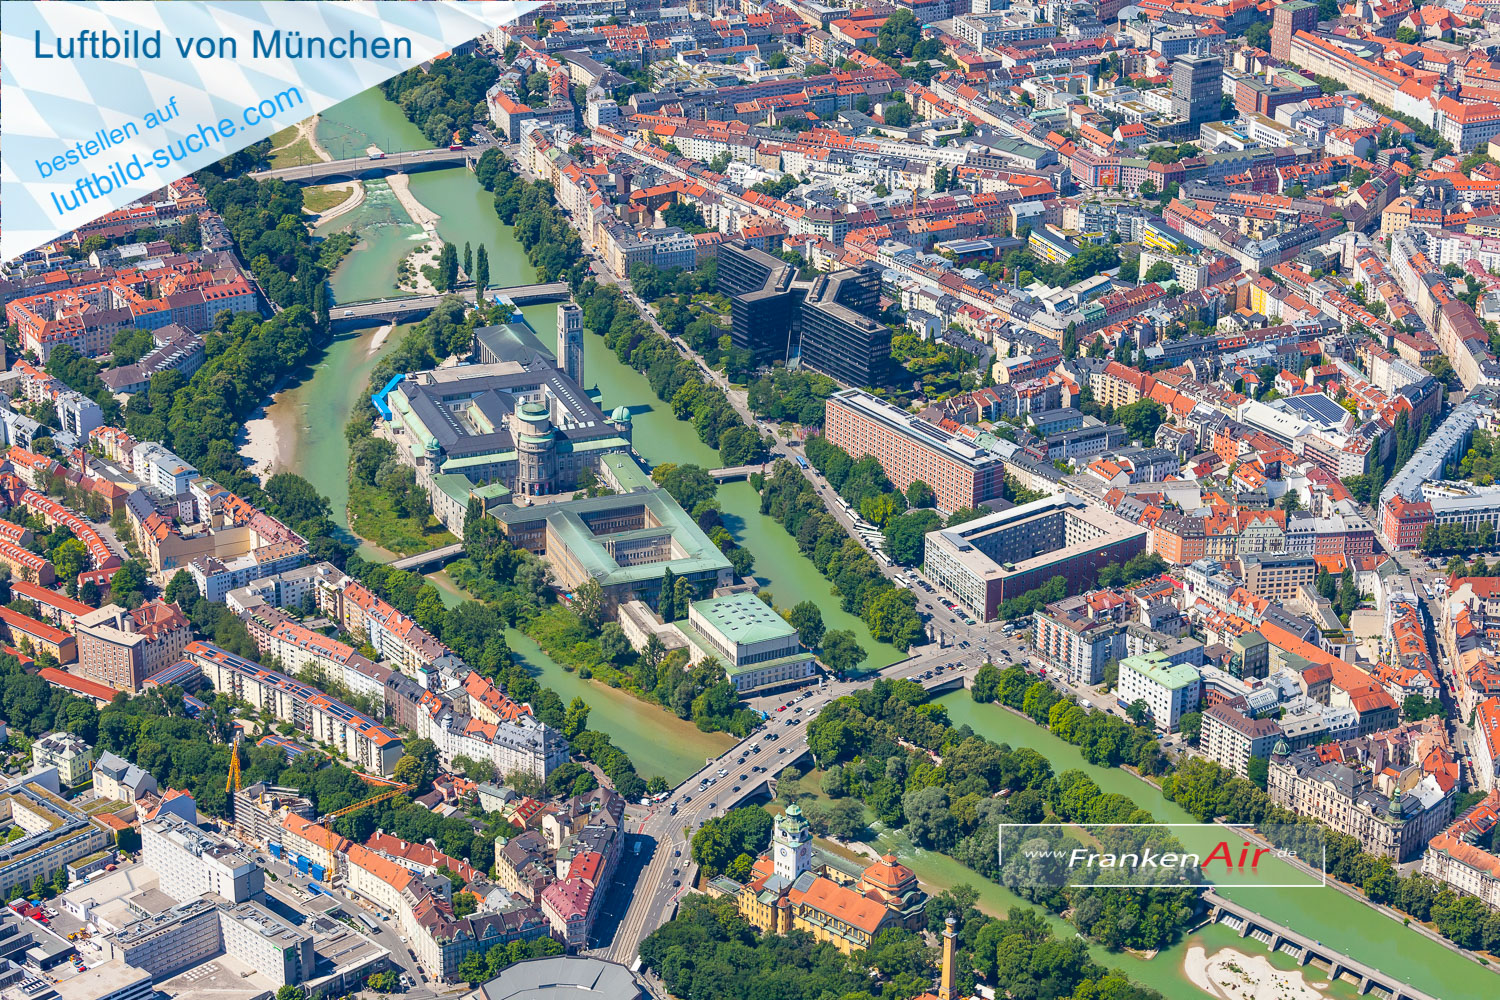 Museumsinsel-muenchen-17-2385